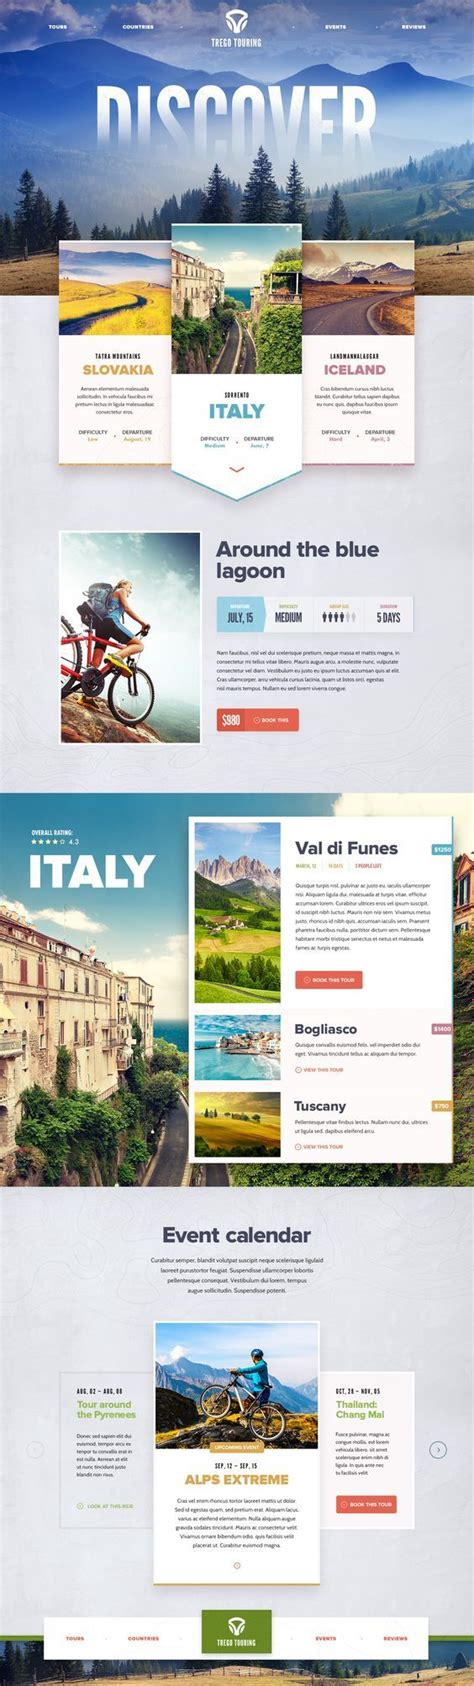 homepage design concepts 25 beautiful travel website design ideas on pinterest travel website templates webpage